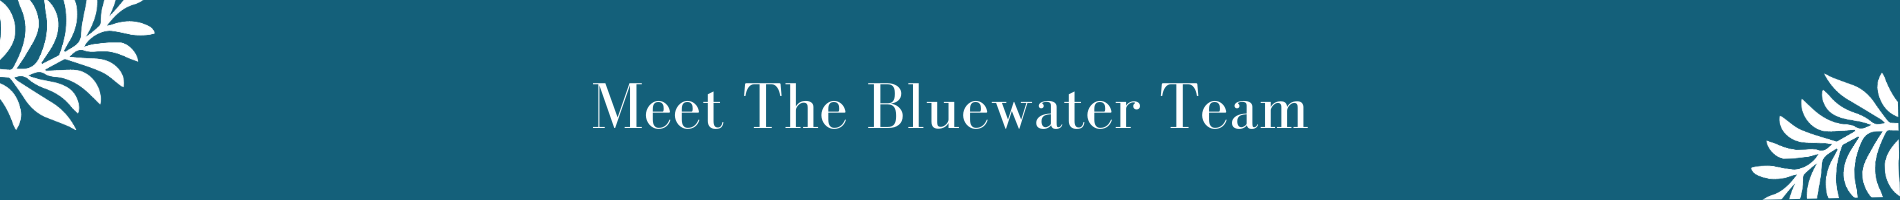 Meet The Bluewater Team